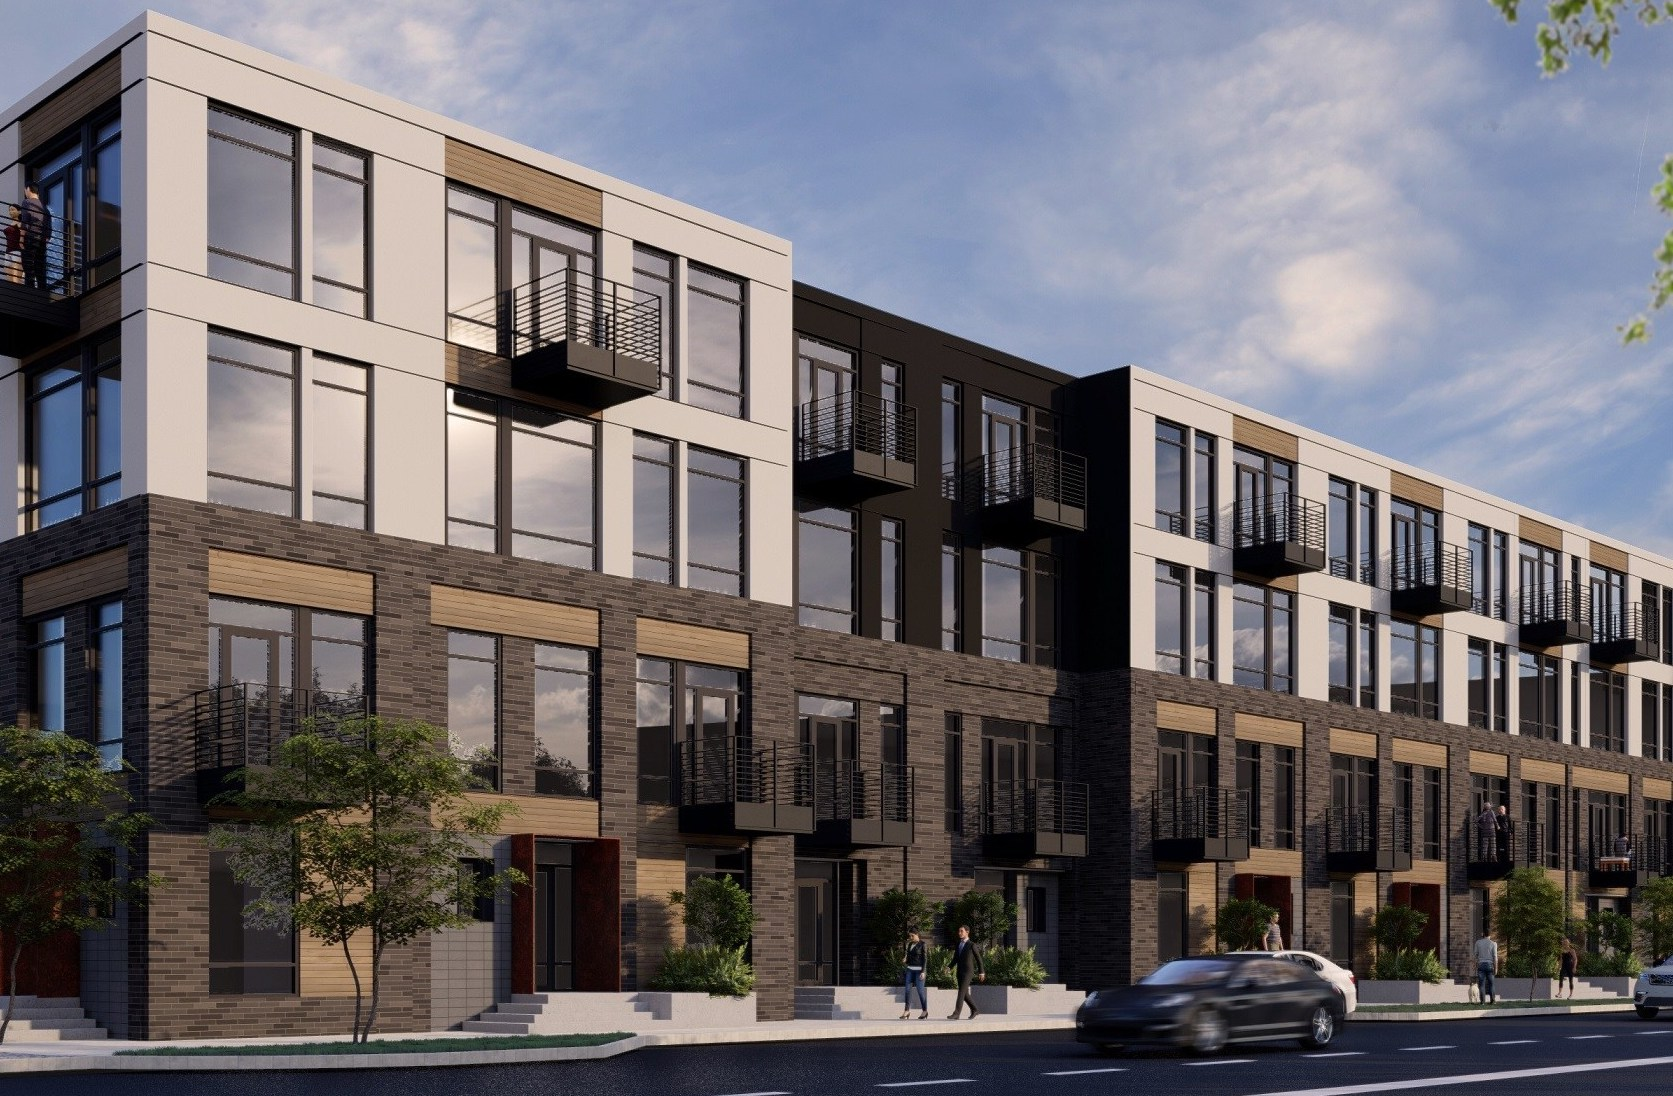 CapitaLand Forms $300 Million Joint-Venture to Scale Multifamily Housing Portfolio in The United States with Initial Focus in Austin, Texas